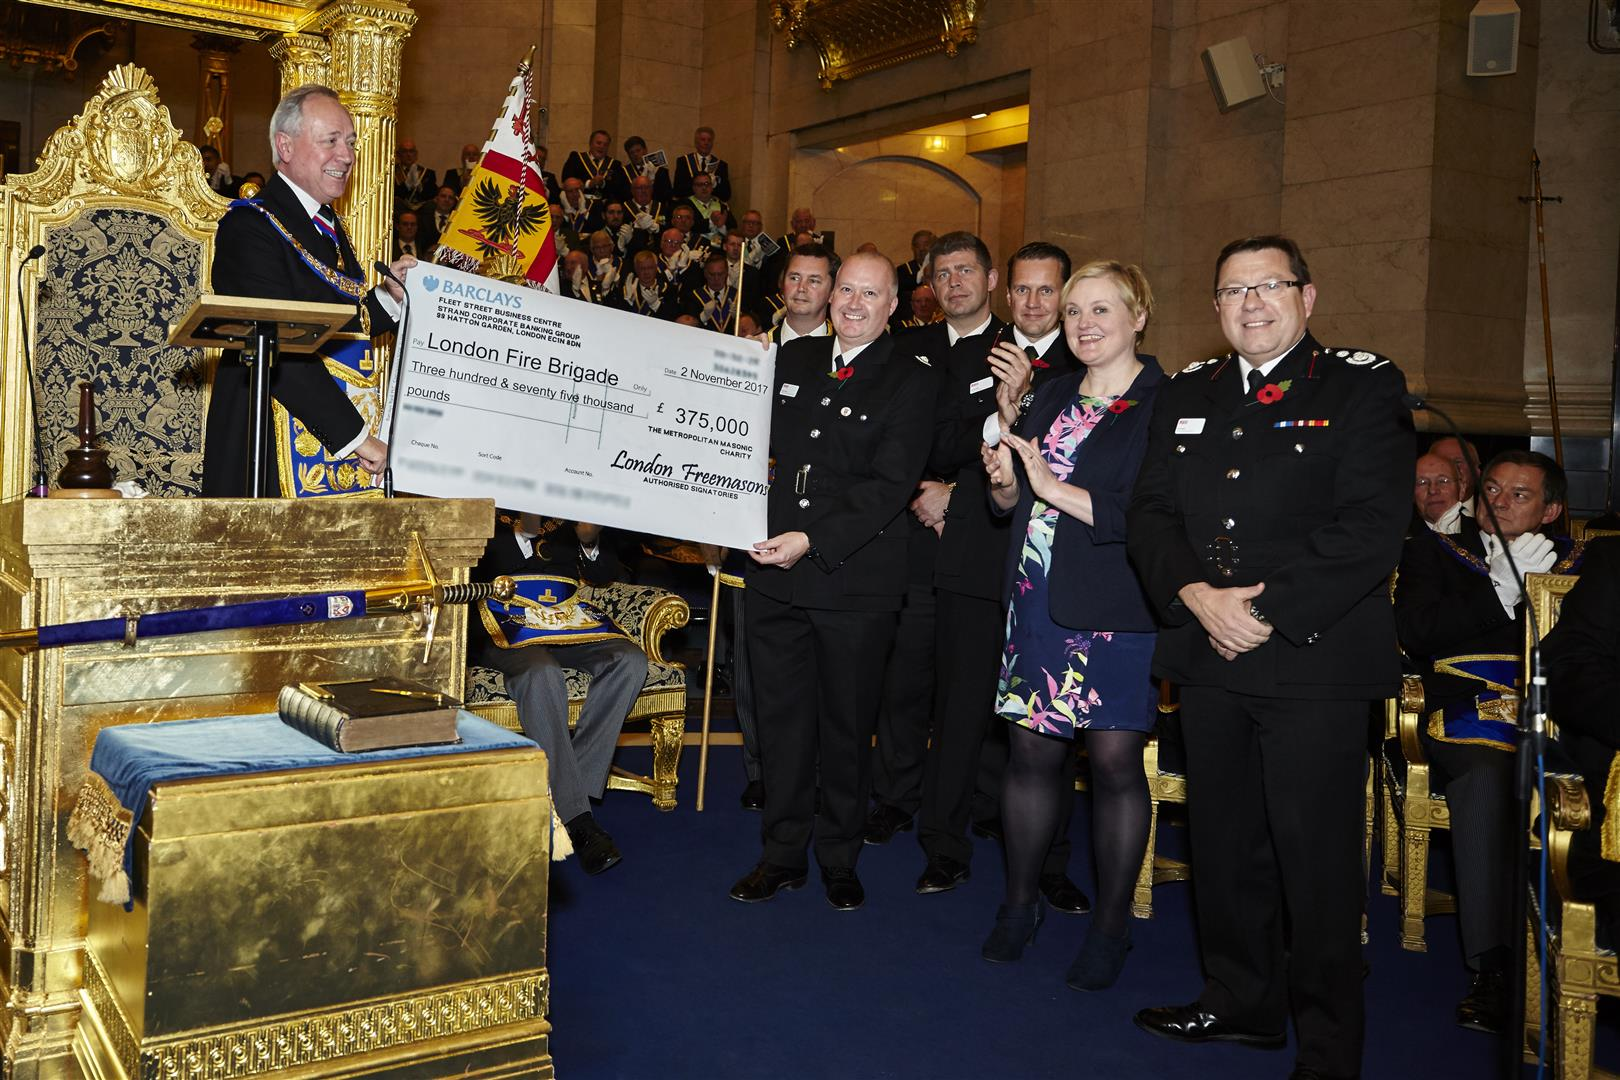 Launch of Fundraising Appeal for London Fire Brigade aerial appliances